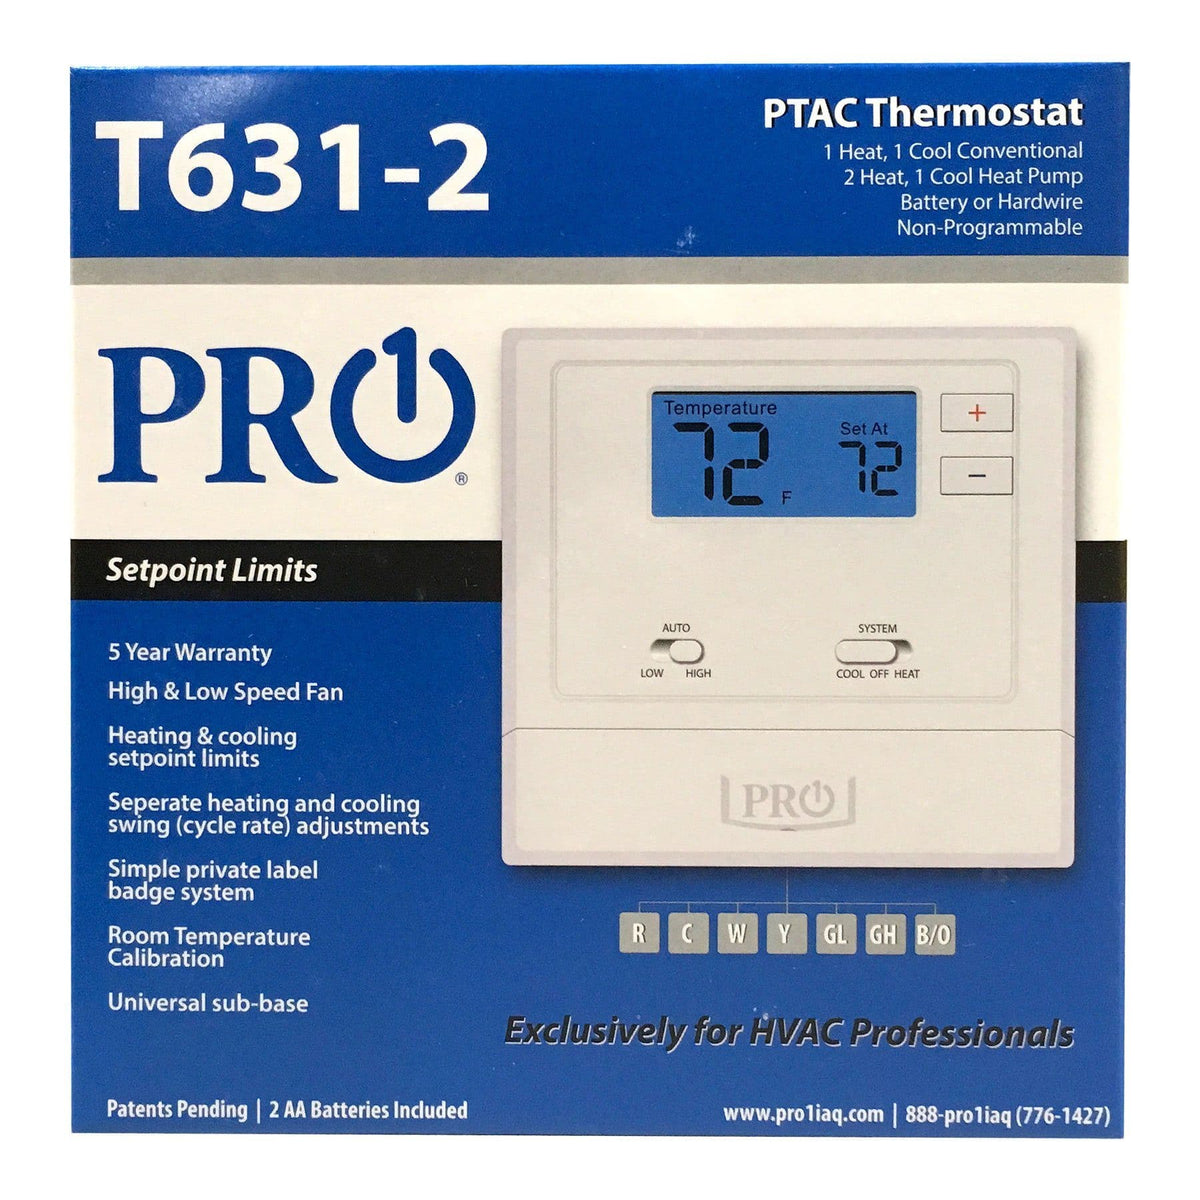 T600 PF: T631-2 Thermostat Wired PTAC thermos NP 1H/1C CV or 2H/1C HP w/2 sqin